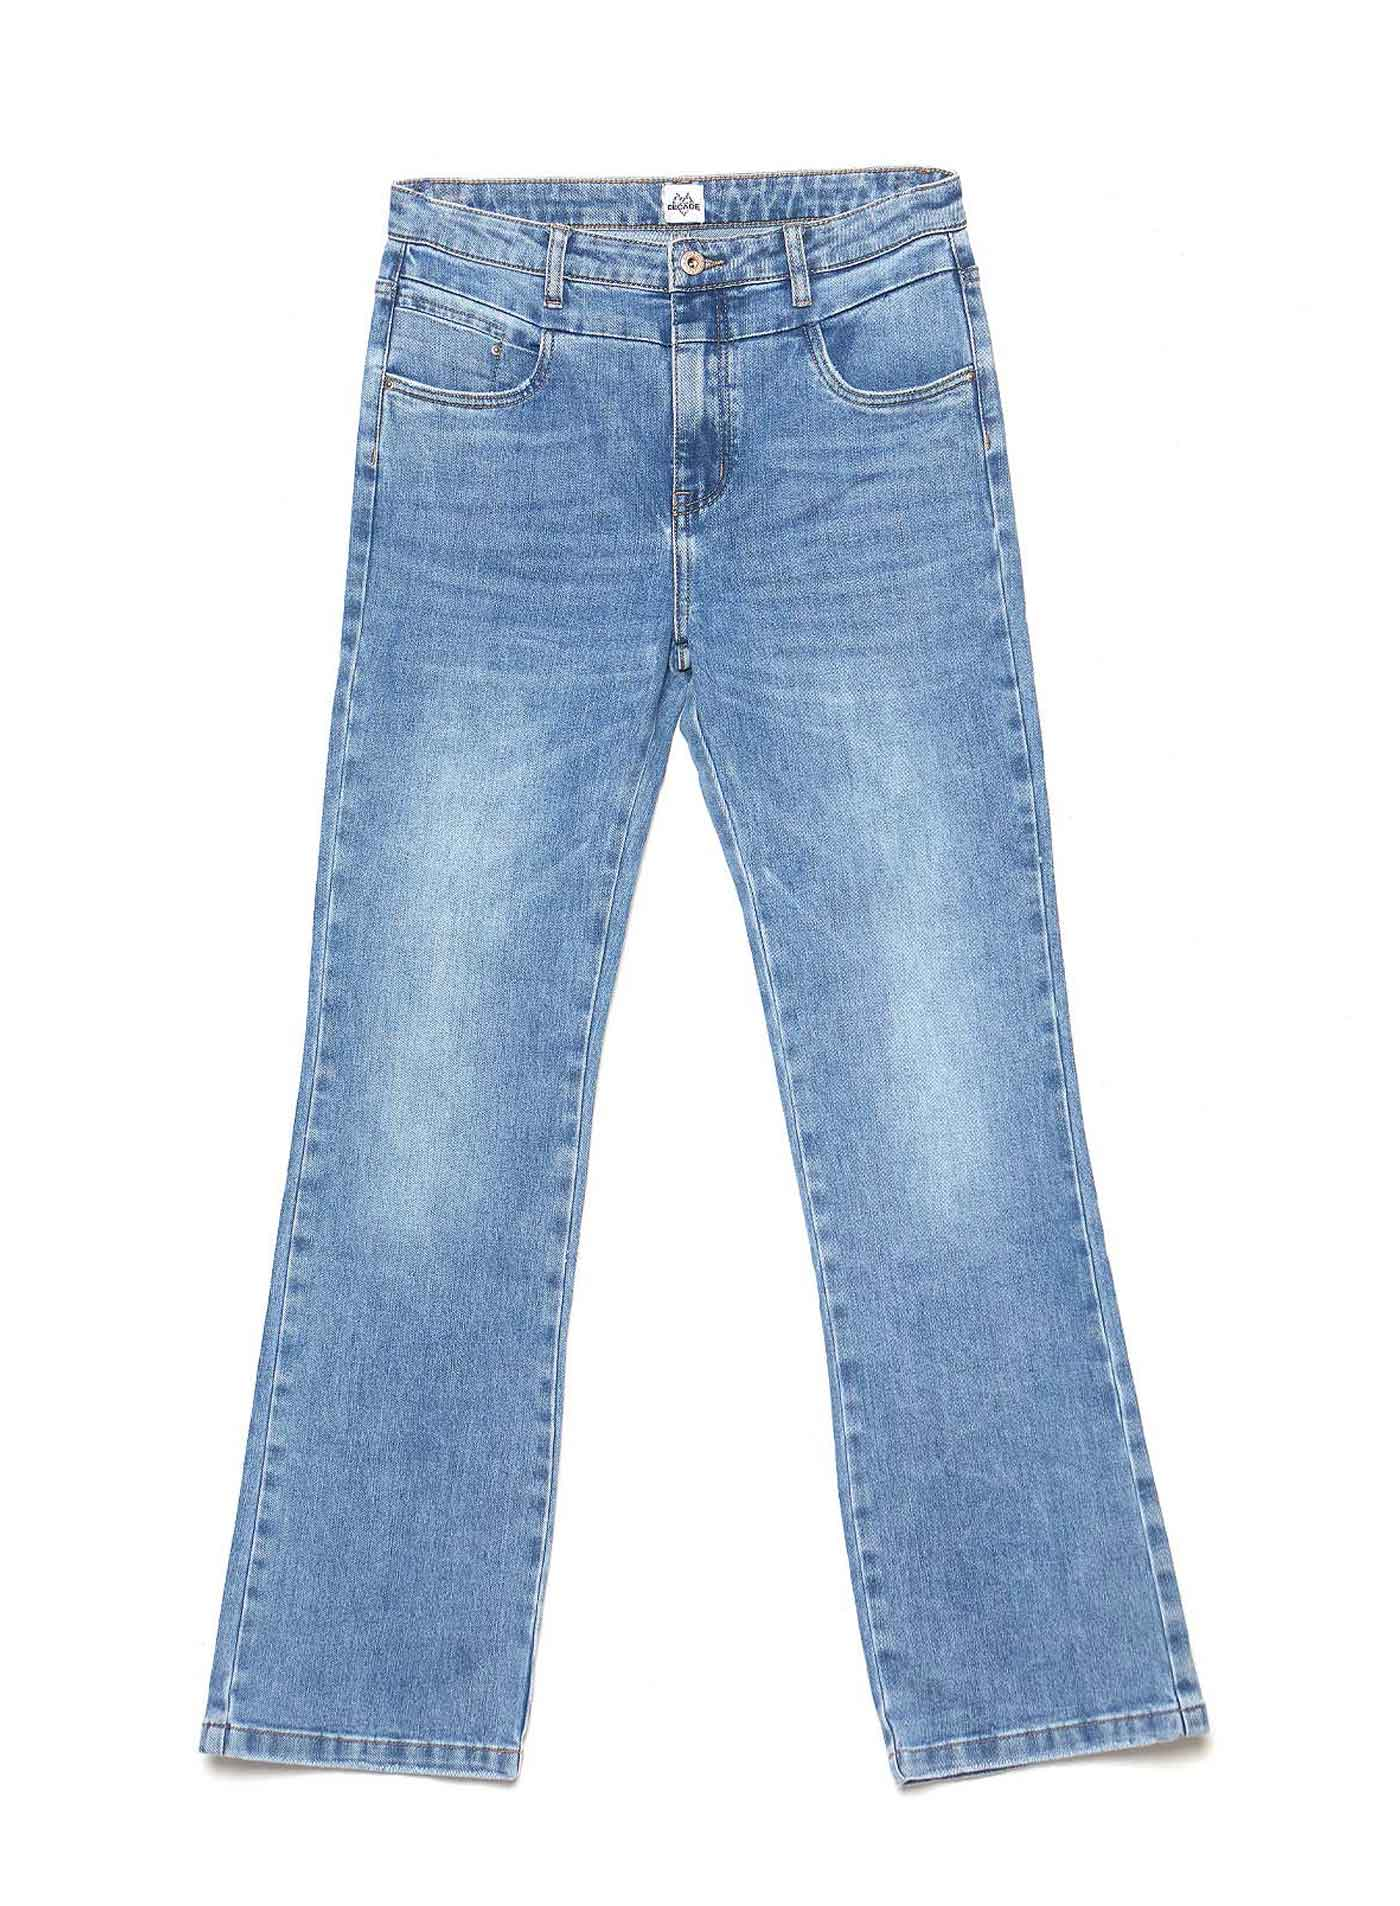 Your Decade KANDY DREAMZ JEANS 3